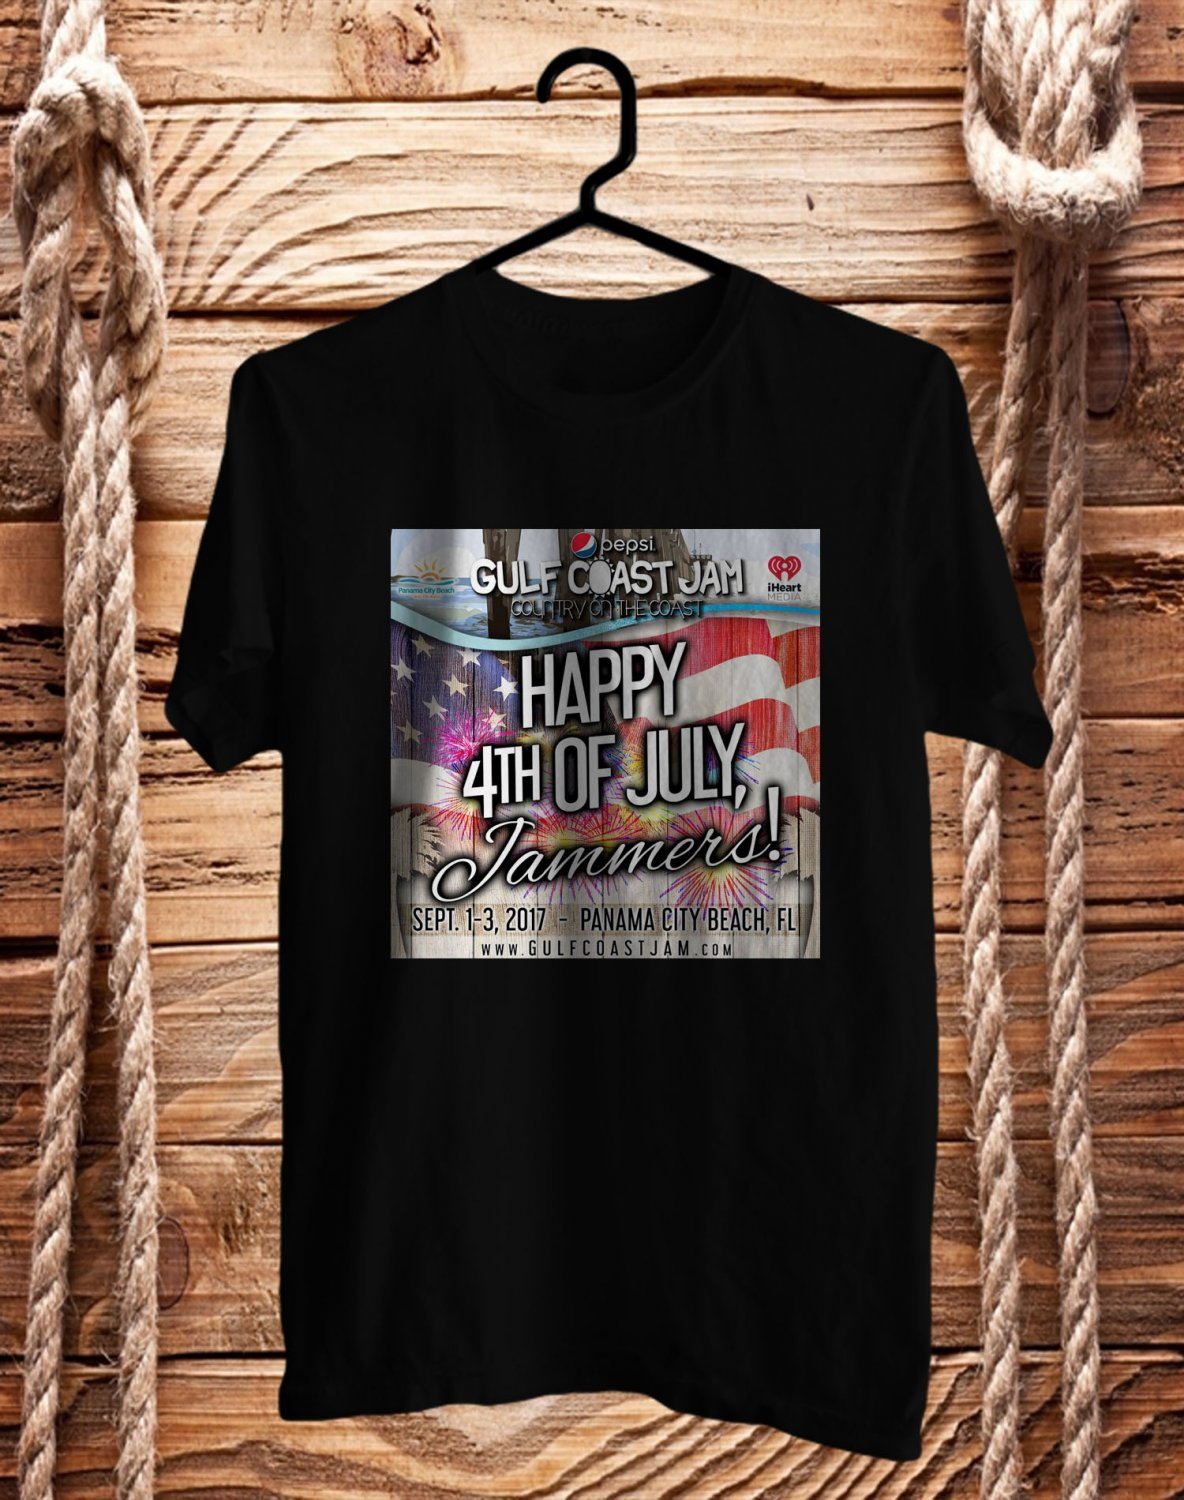 Pepsi Gulf Coast Country Jam 2017 Black Tee's Front Side by Complexart z2